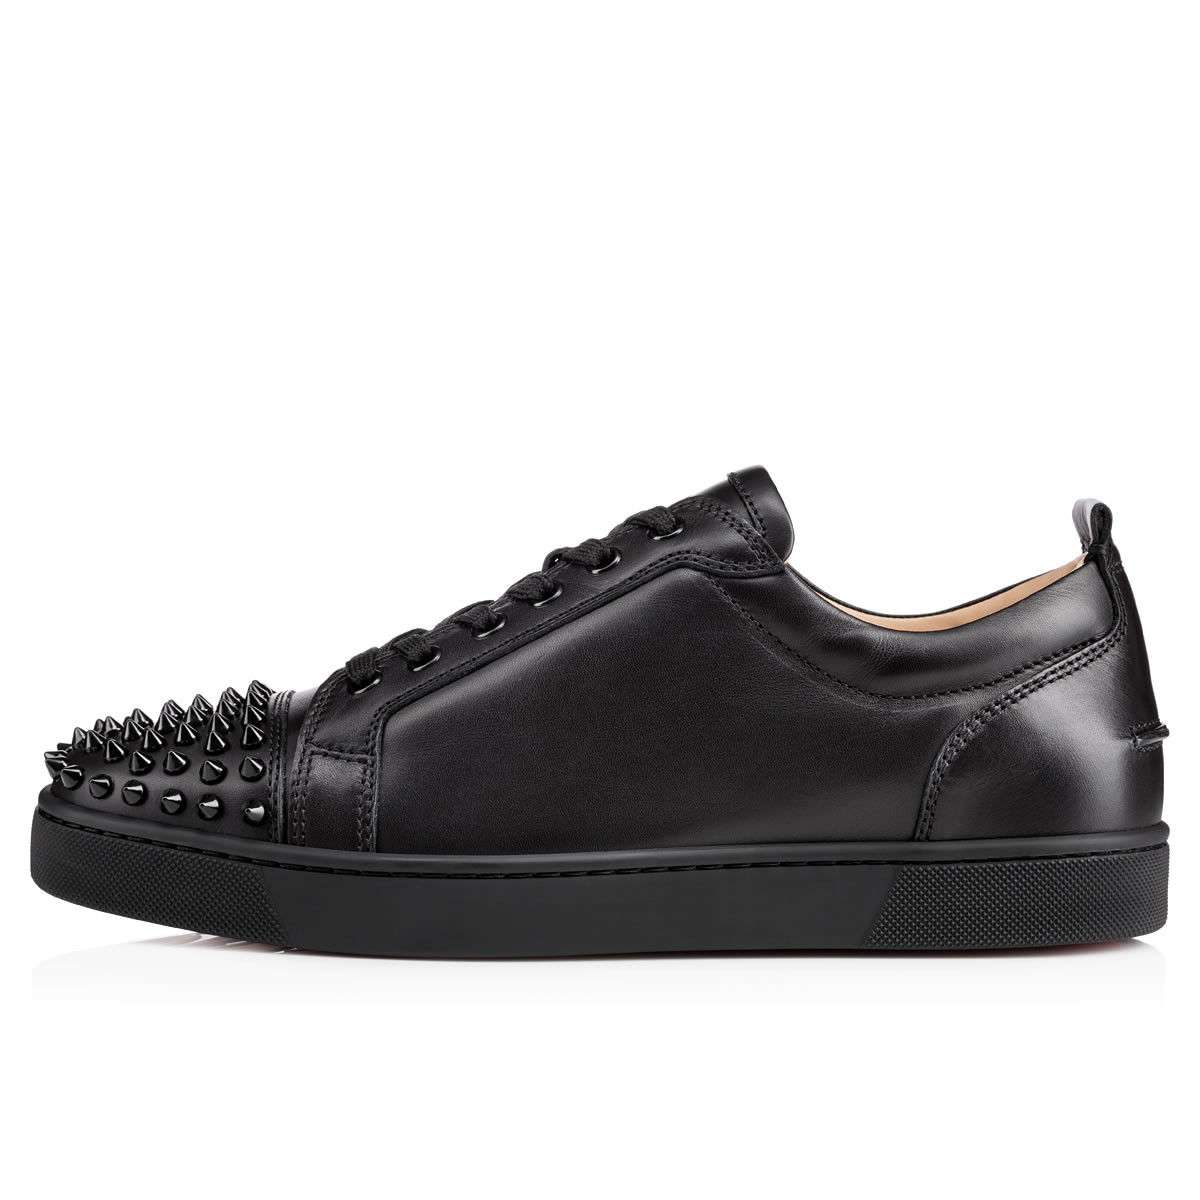 Souliers Homme - Louis Junior Spikes - Christian Louboutin